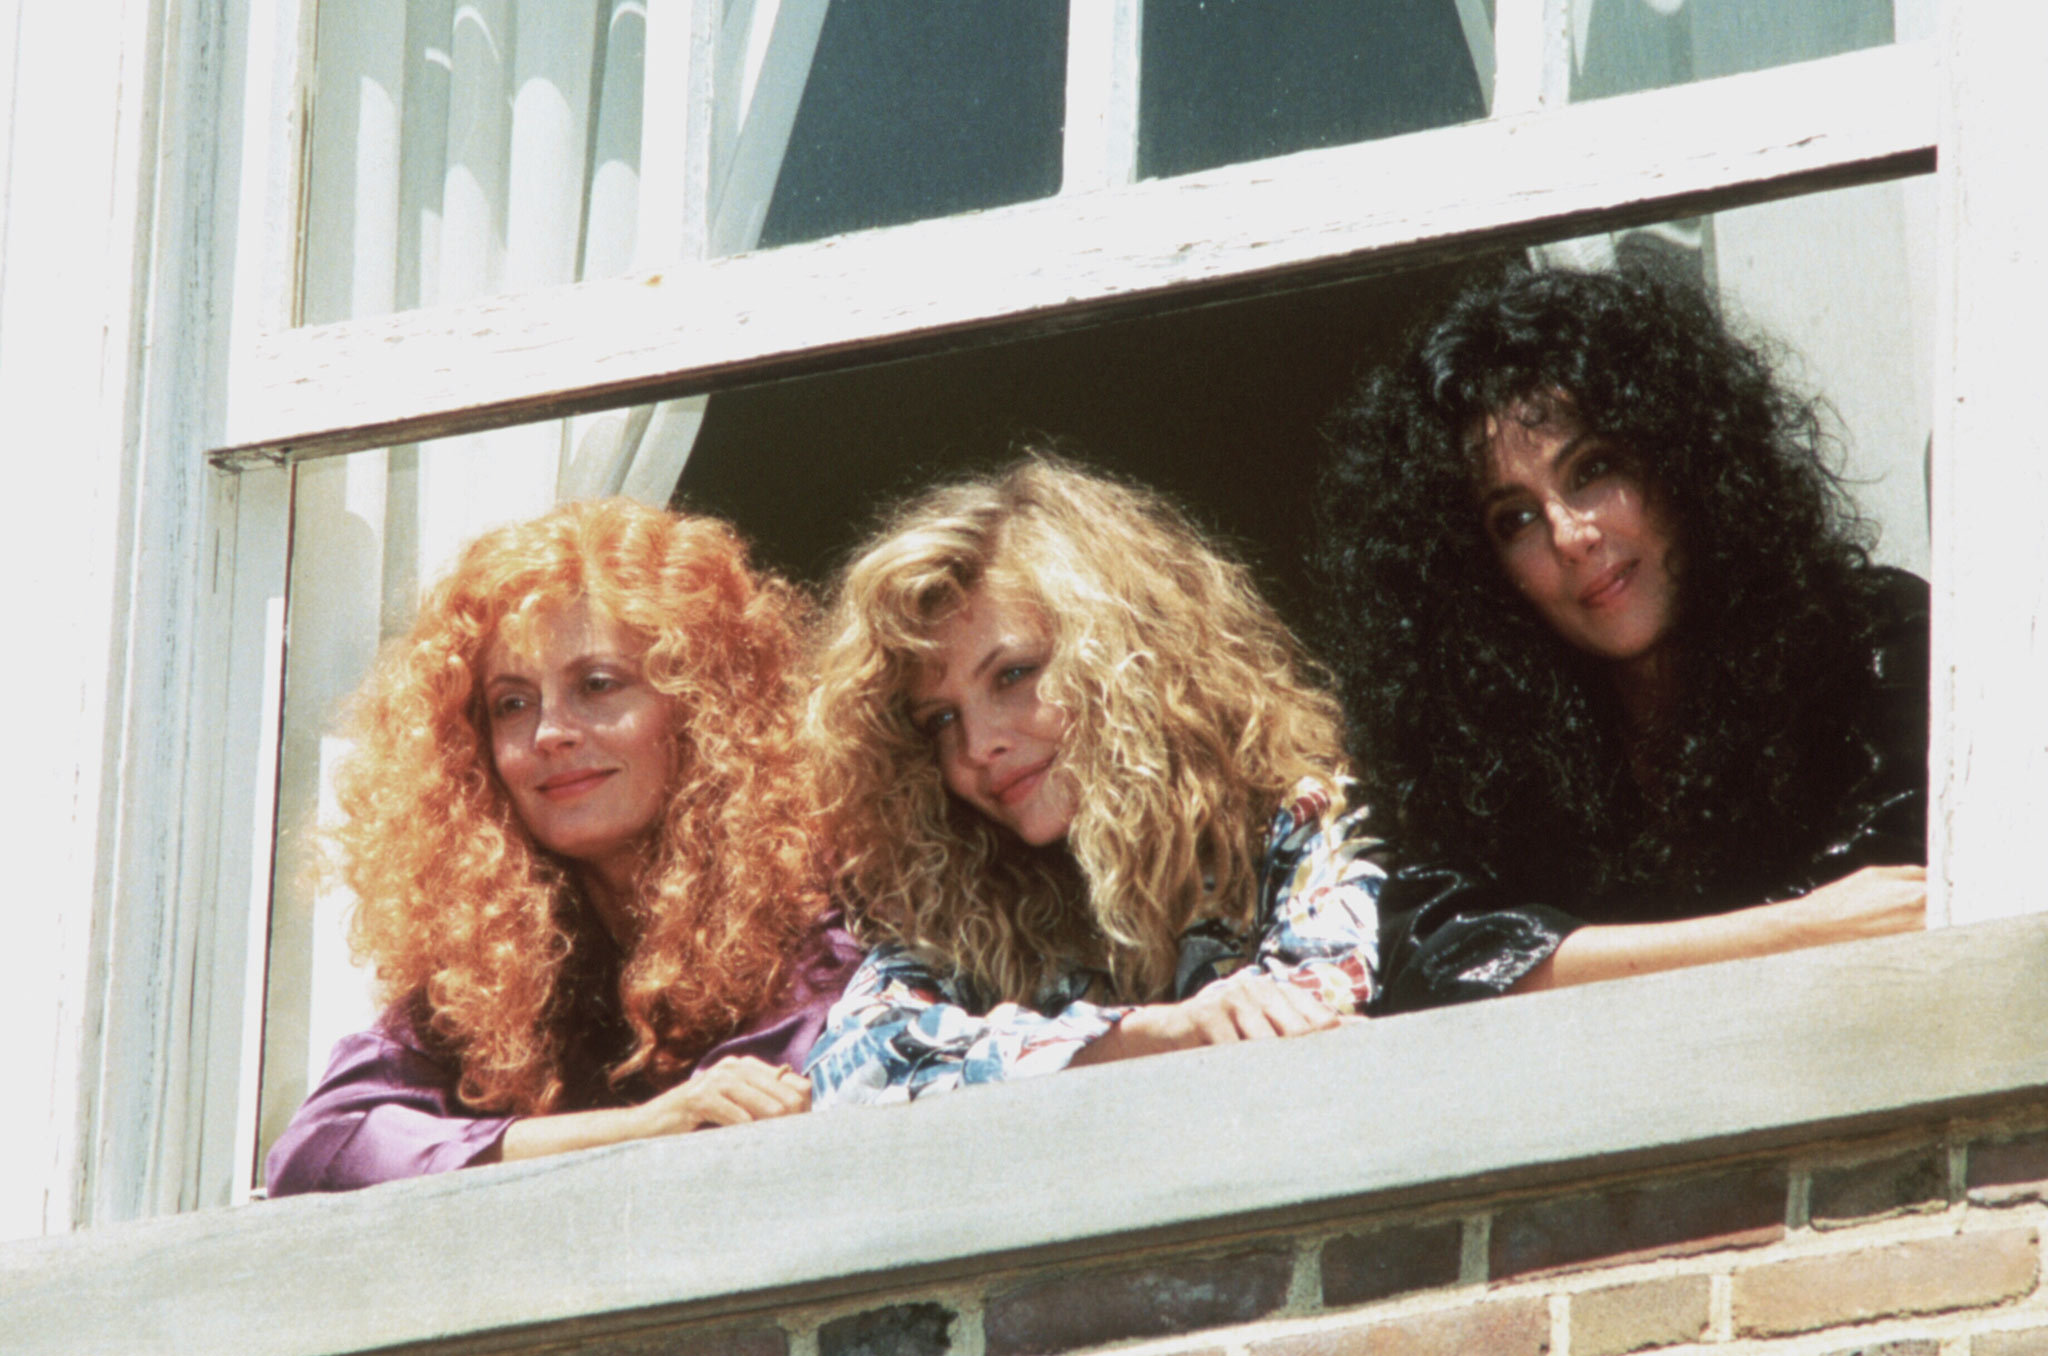 Jane Spofford, Alexandra Medford and Sukie Ridgemont<br>(Michelle Pfeiffer, Susan Sarandon and Cher)